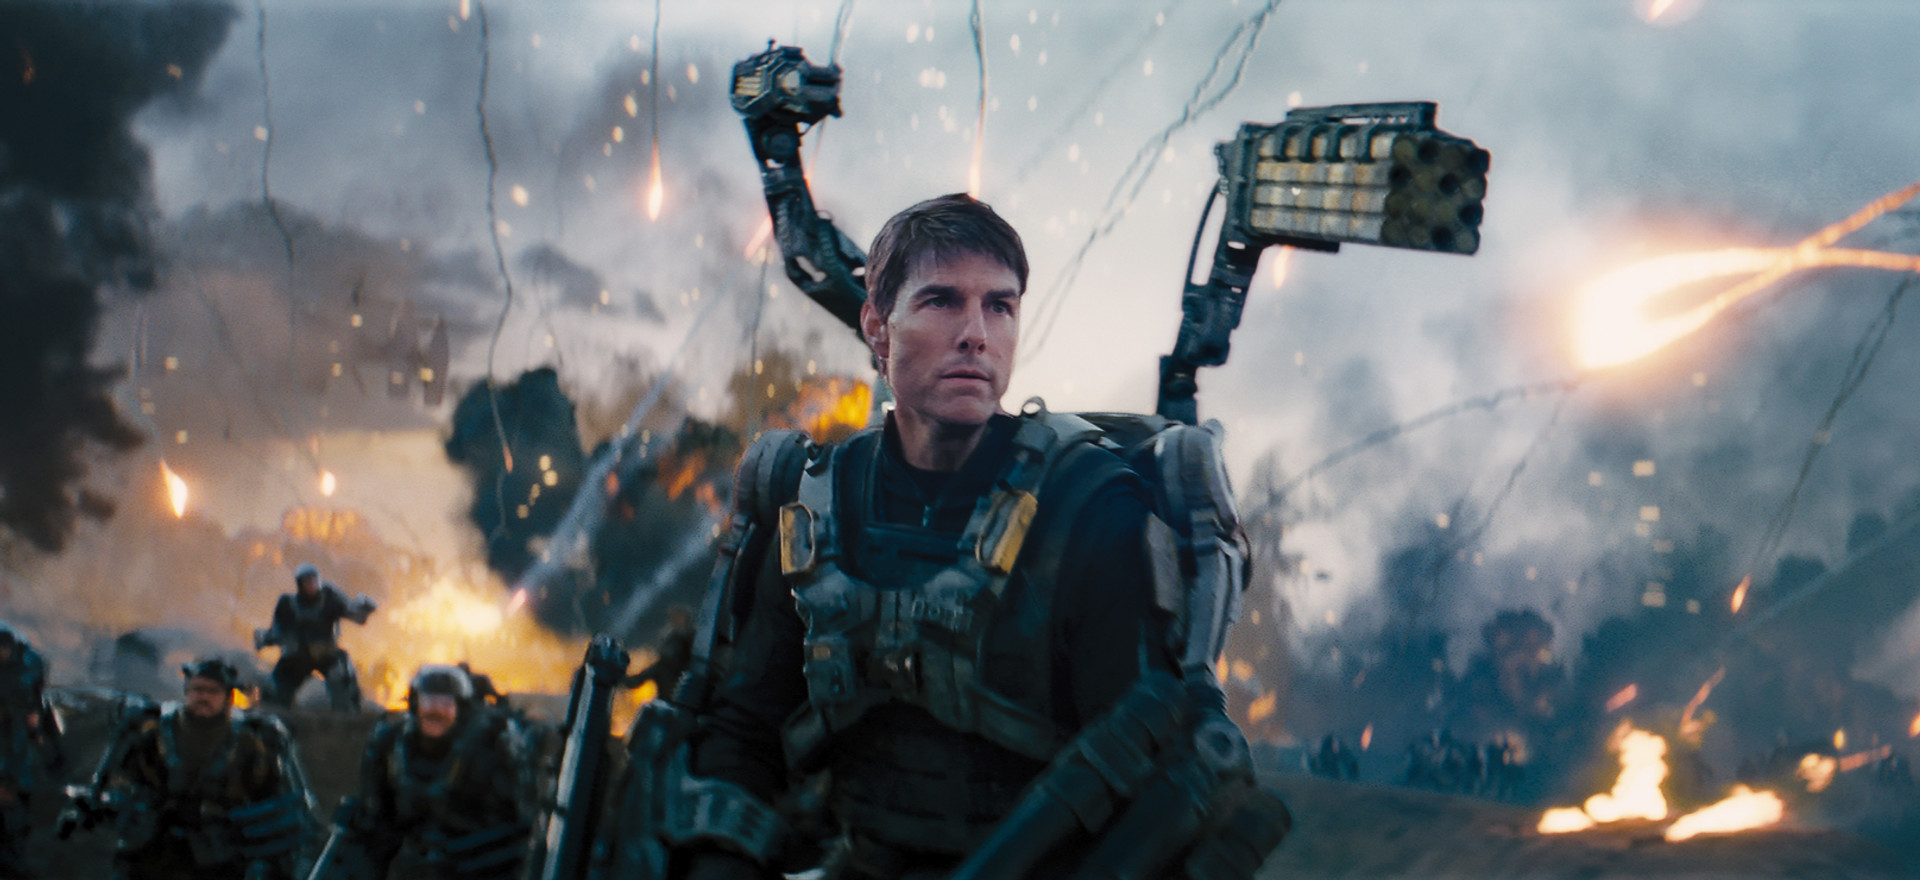 5-reasons-why-edge-of-tomorrow-is-awesom